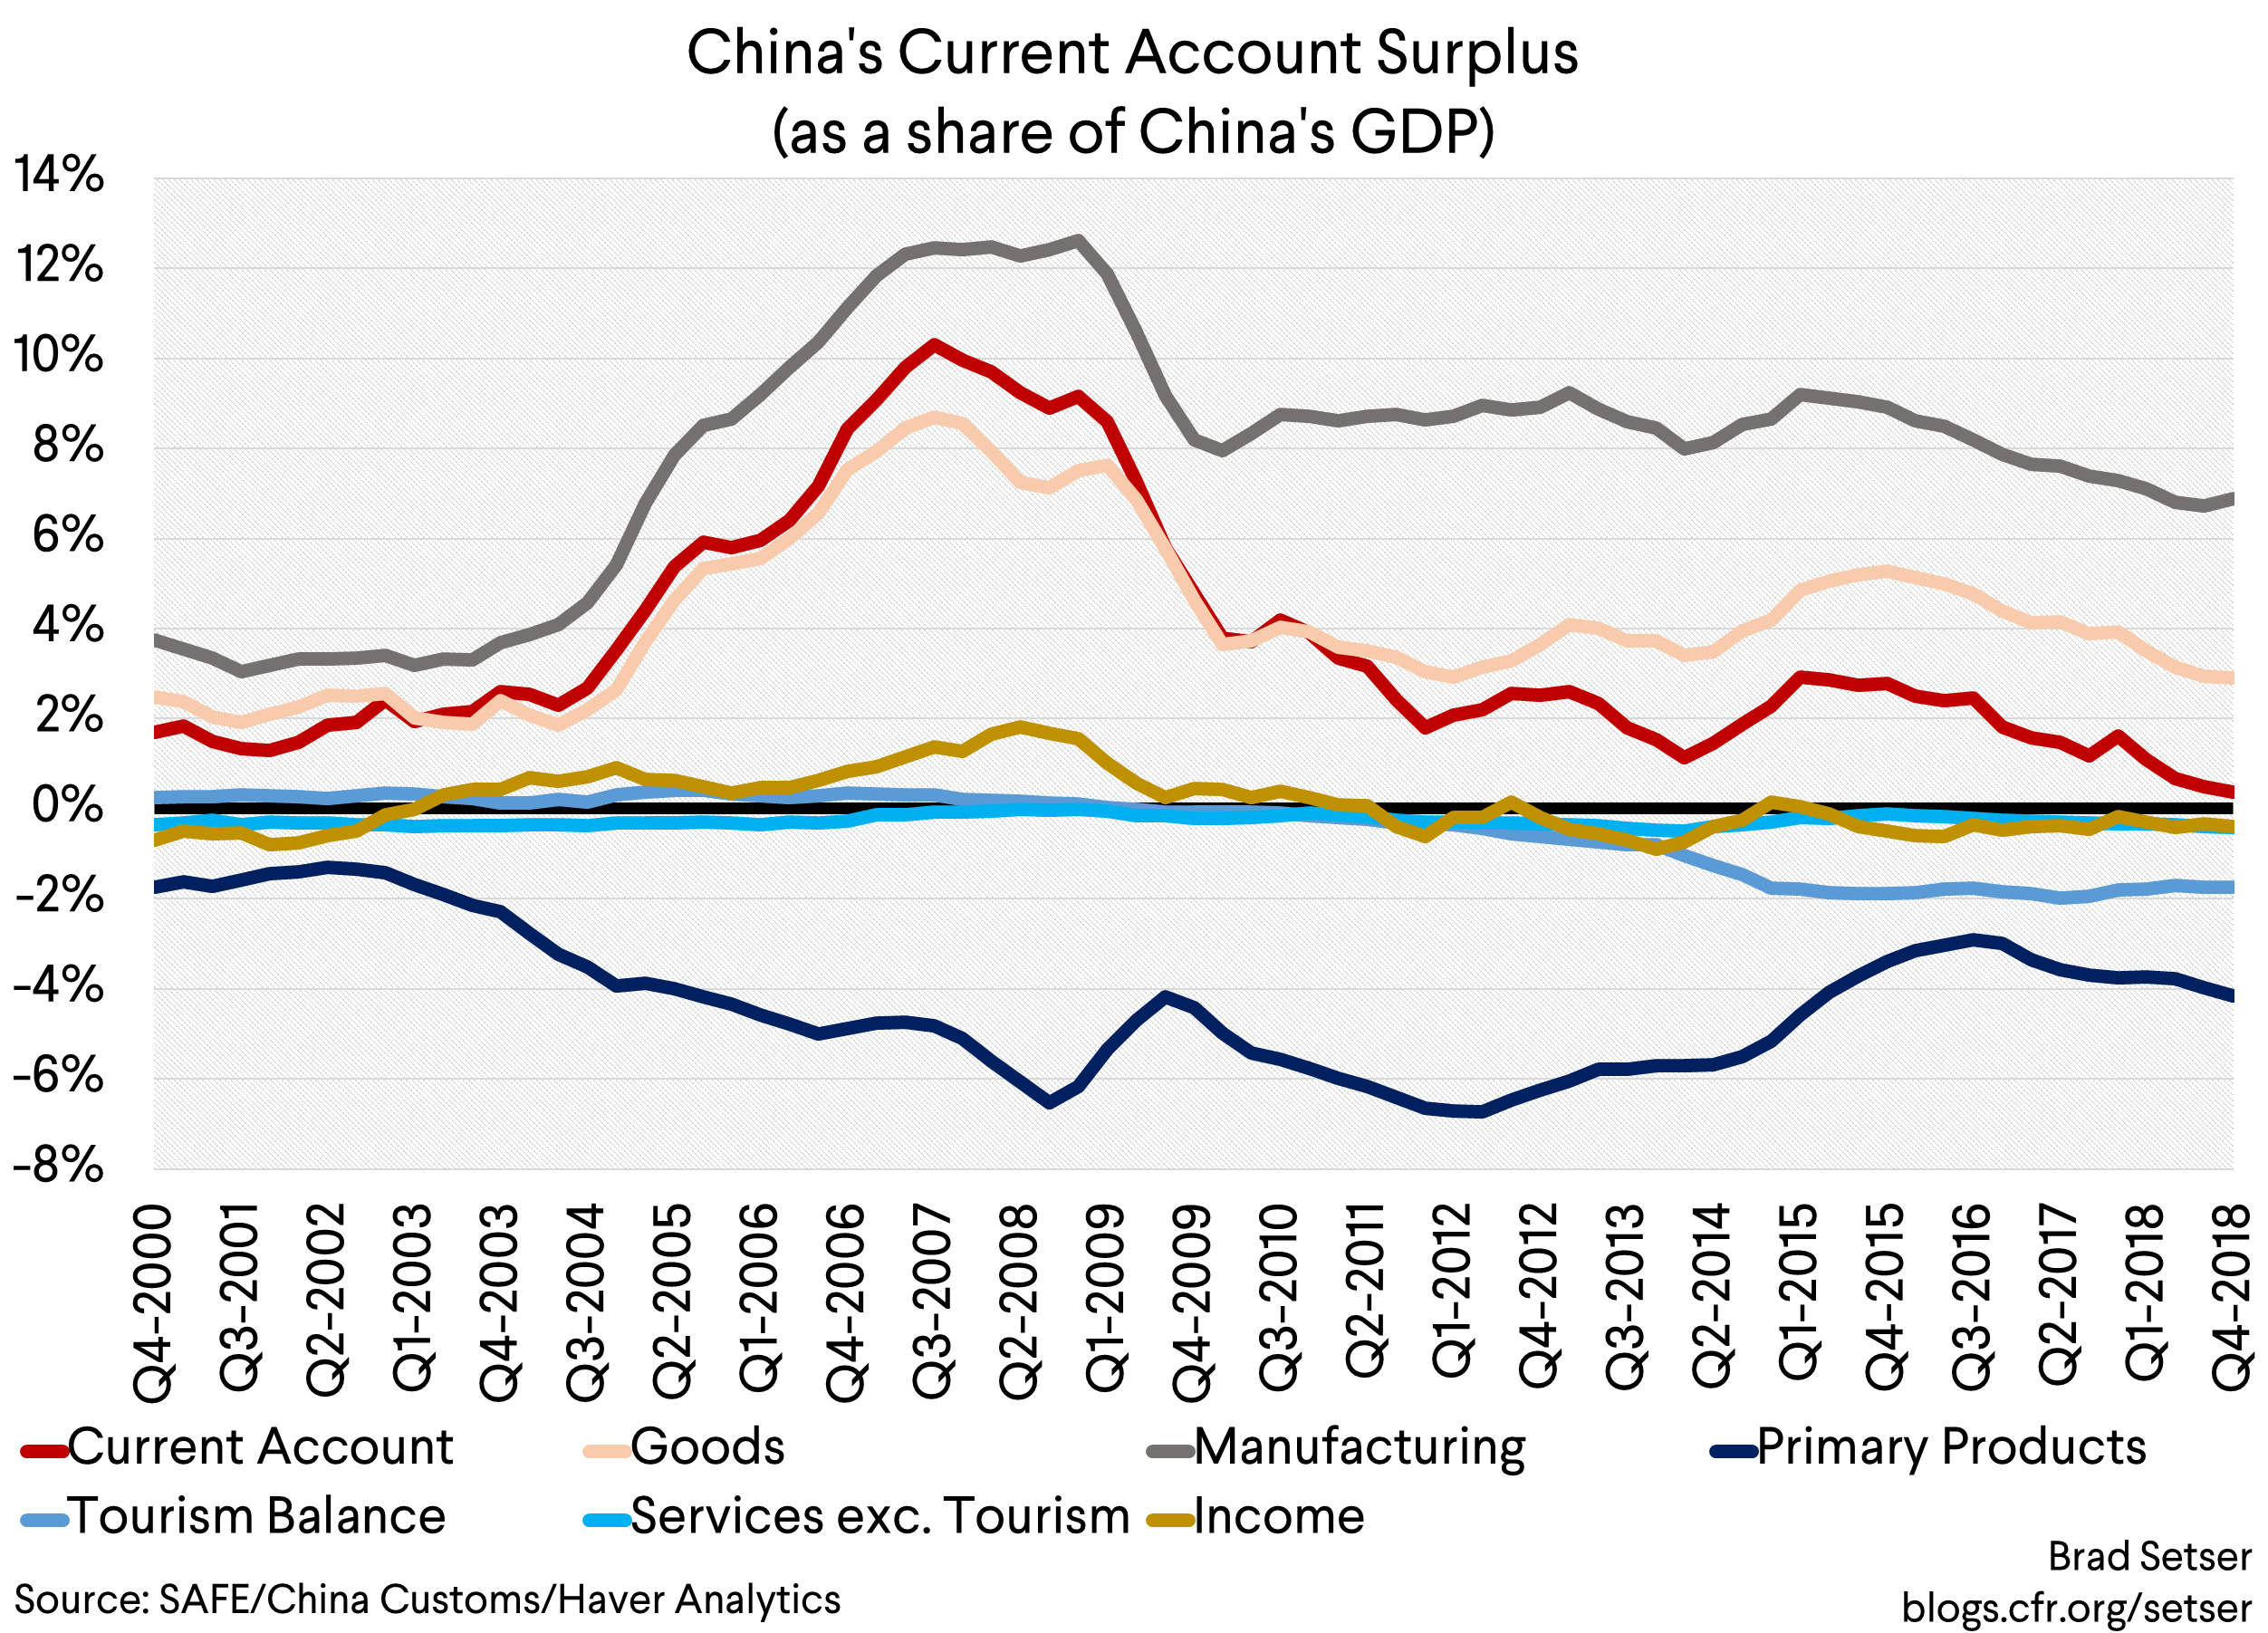 China's Coming Current Account Deficit?